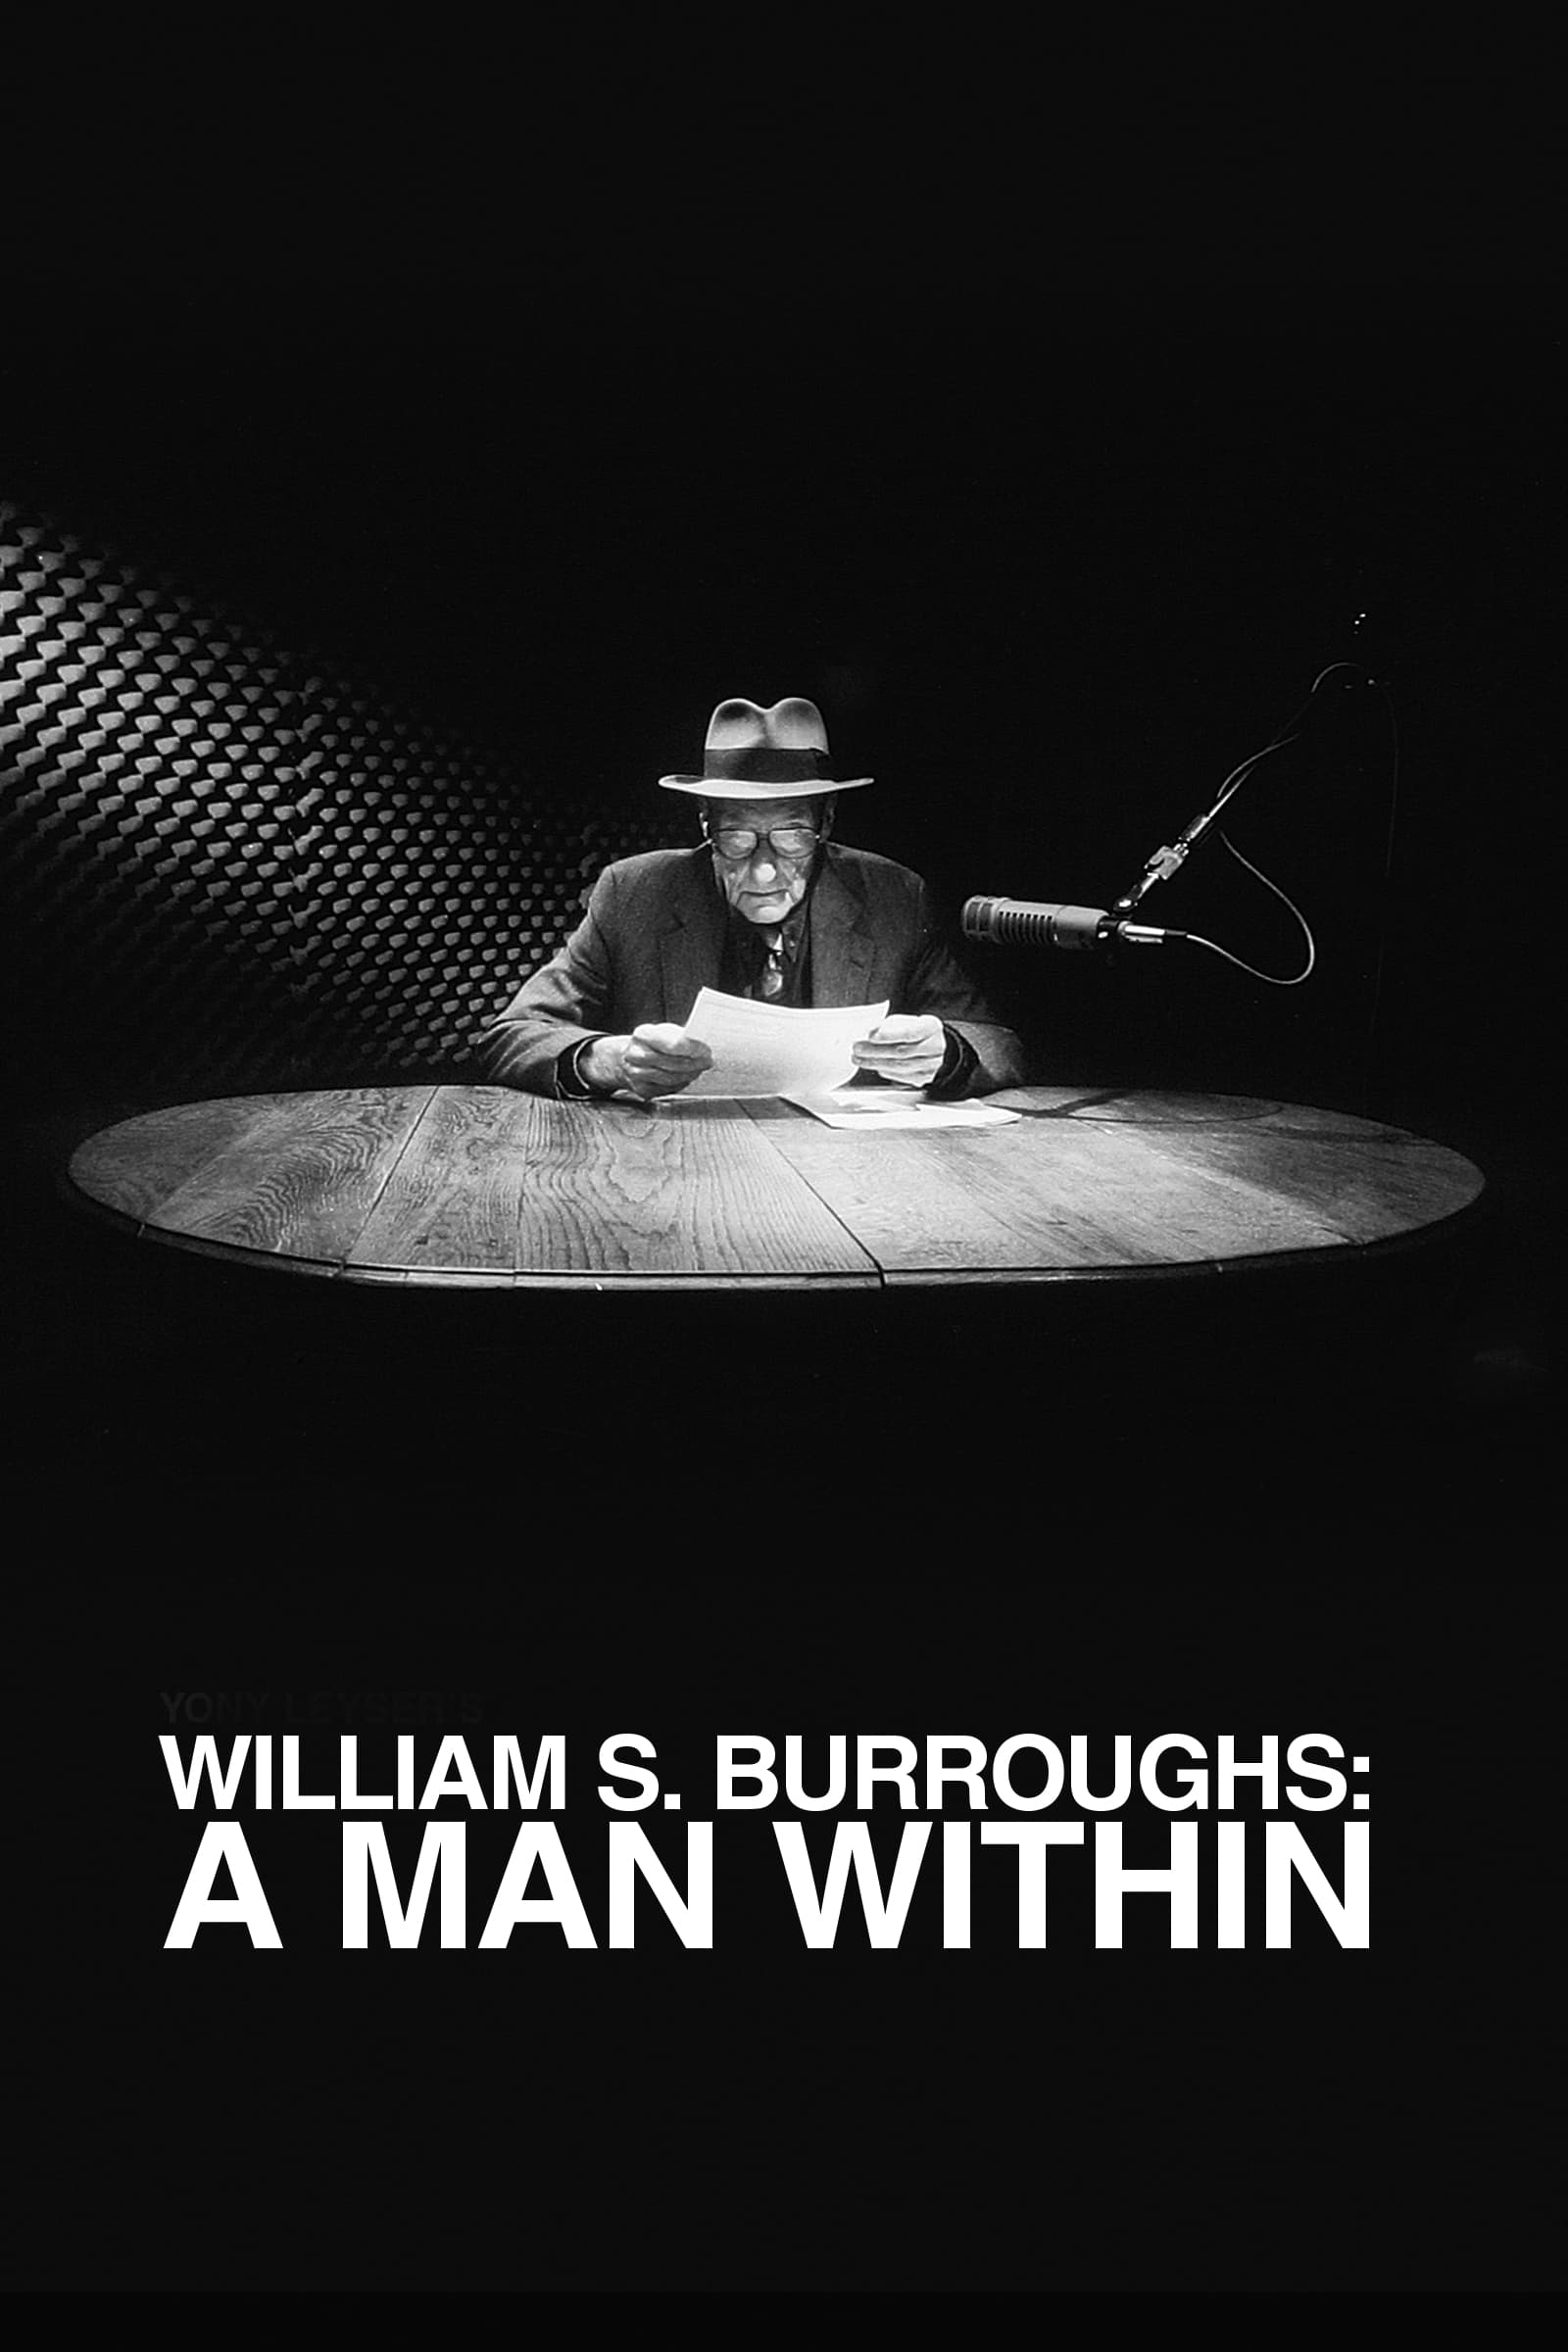 william s. burroughs thesis William s burroughs' naked lunch: drugs, satire, and the metaphor of control senior paper presented in partial fulfillment of the requirements for a degree bachelor of arts with.